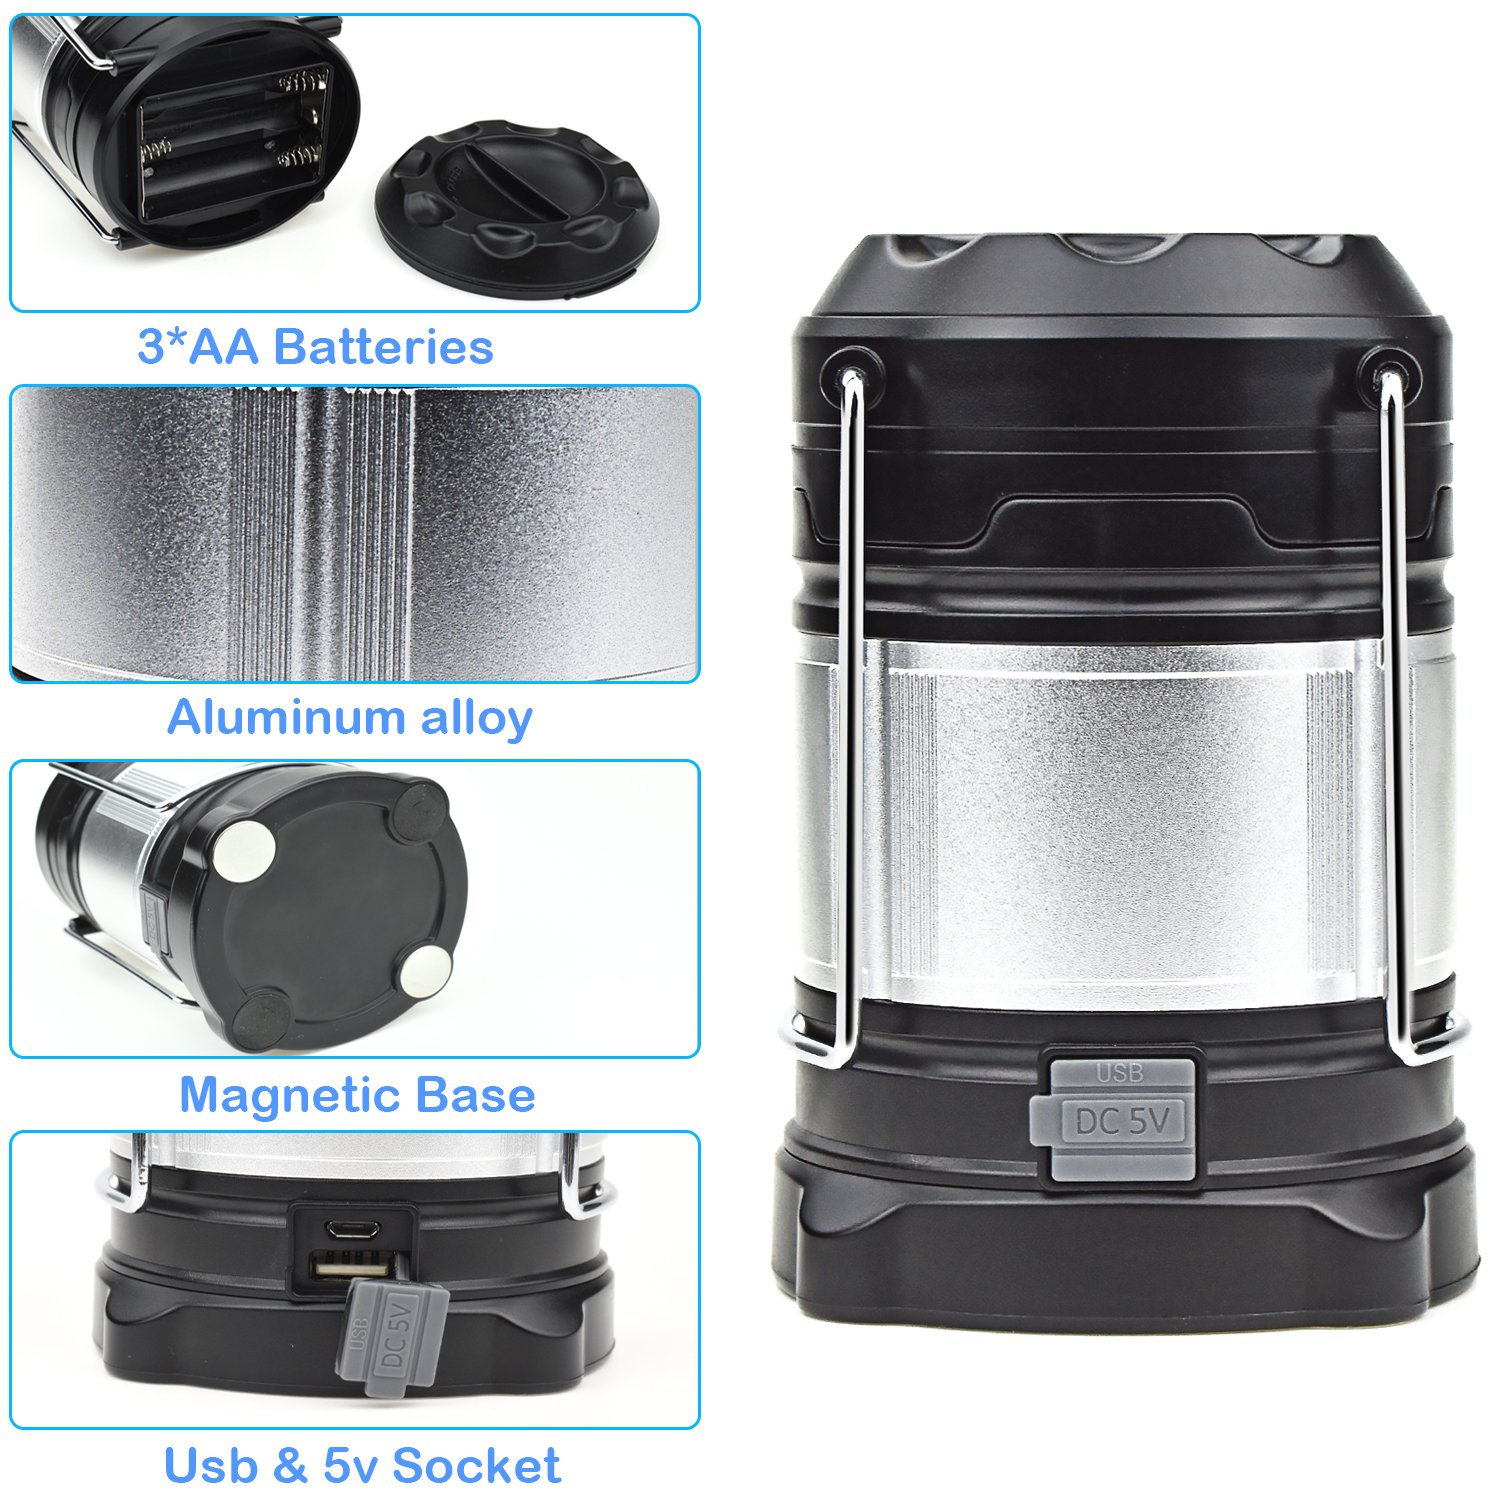 Alcoon Rechargeable LED Camping Lantern Light Lamp with 5600mAh Power Bank, Portable Collapsible Waterproof Outdoor Light with 18650 Li-ion Batteries for Camping Traveling Tent, Emergency, Outage by Alcoon (Image #4)